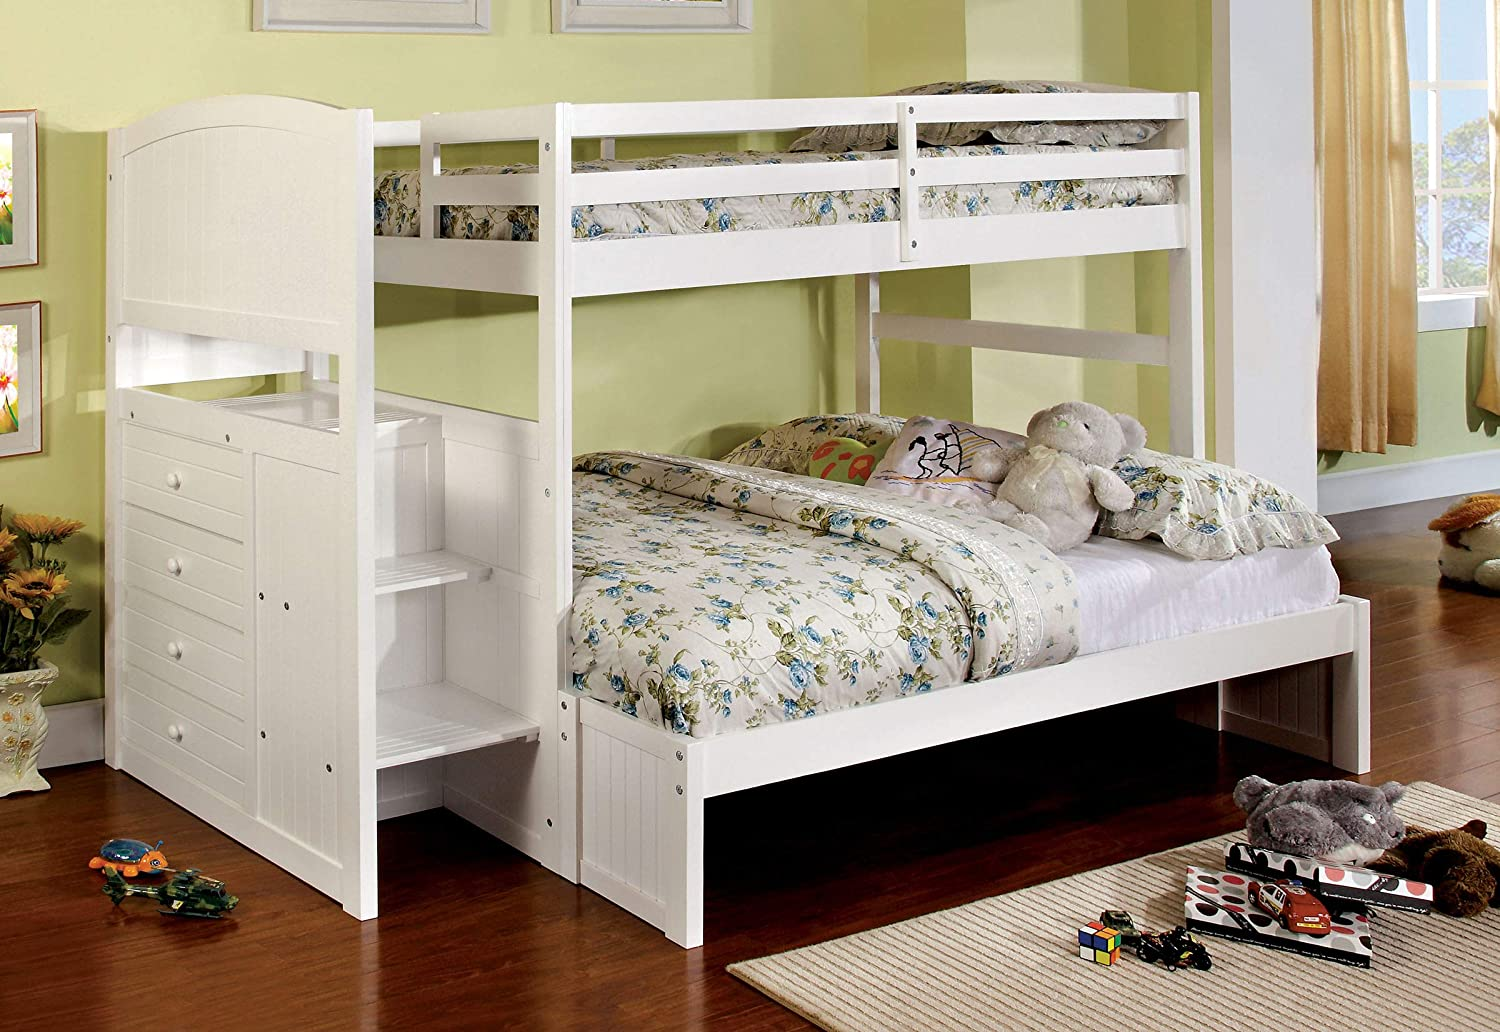 William's Home Furnishing Appenzell Bunk, Twin, White